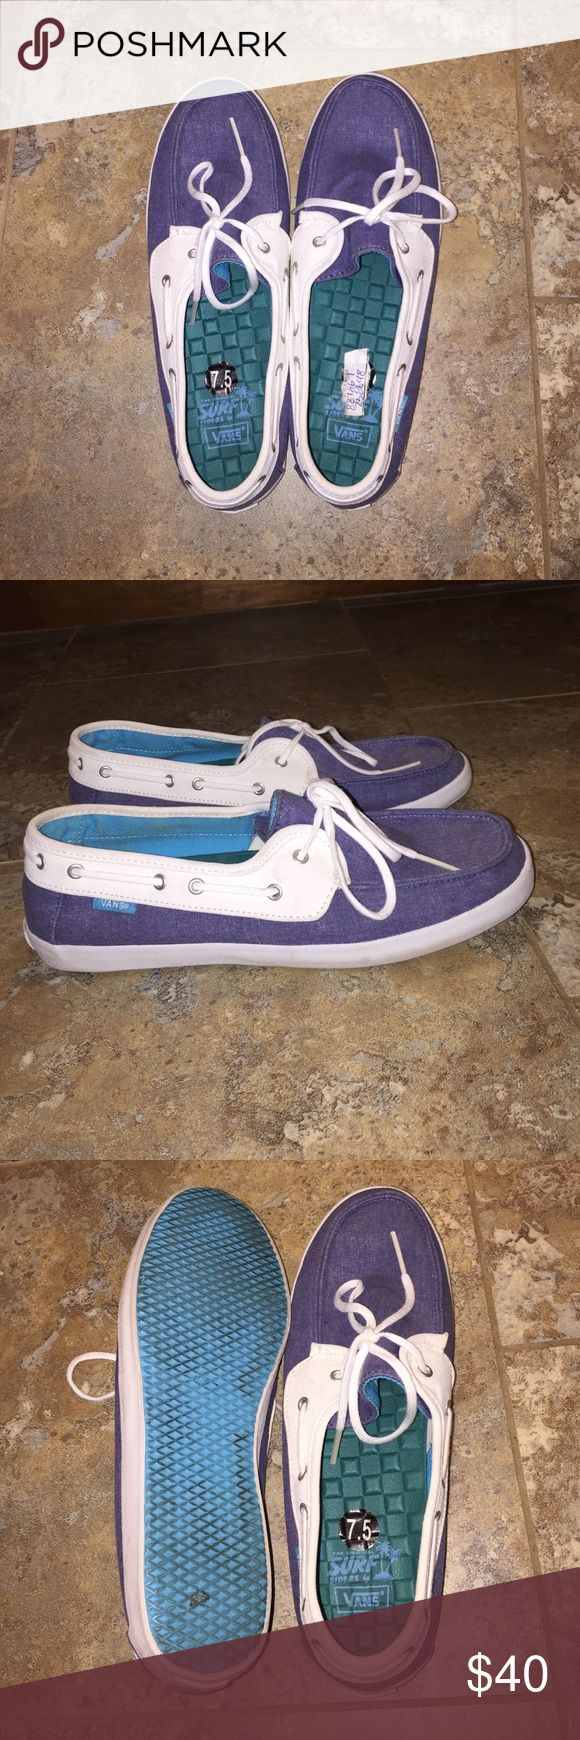 Vans boat shoes Women's size 7.5 vans boat shoes, worn twice, they just don't go with my wardrobe Vans Shoes Flats & Loafers